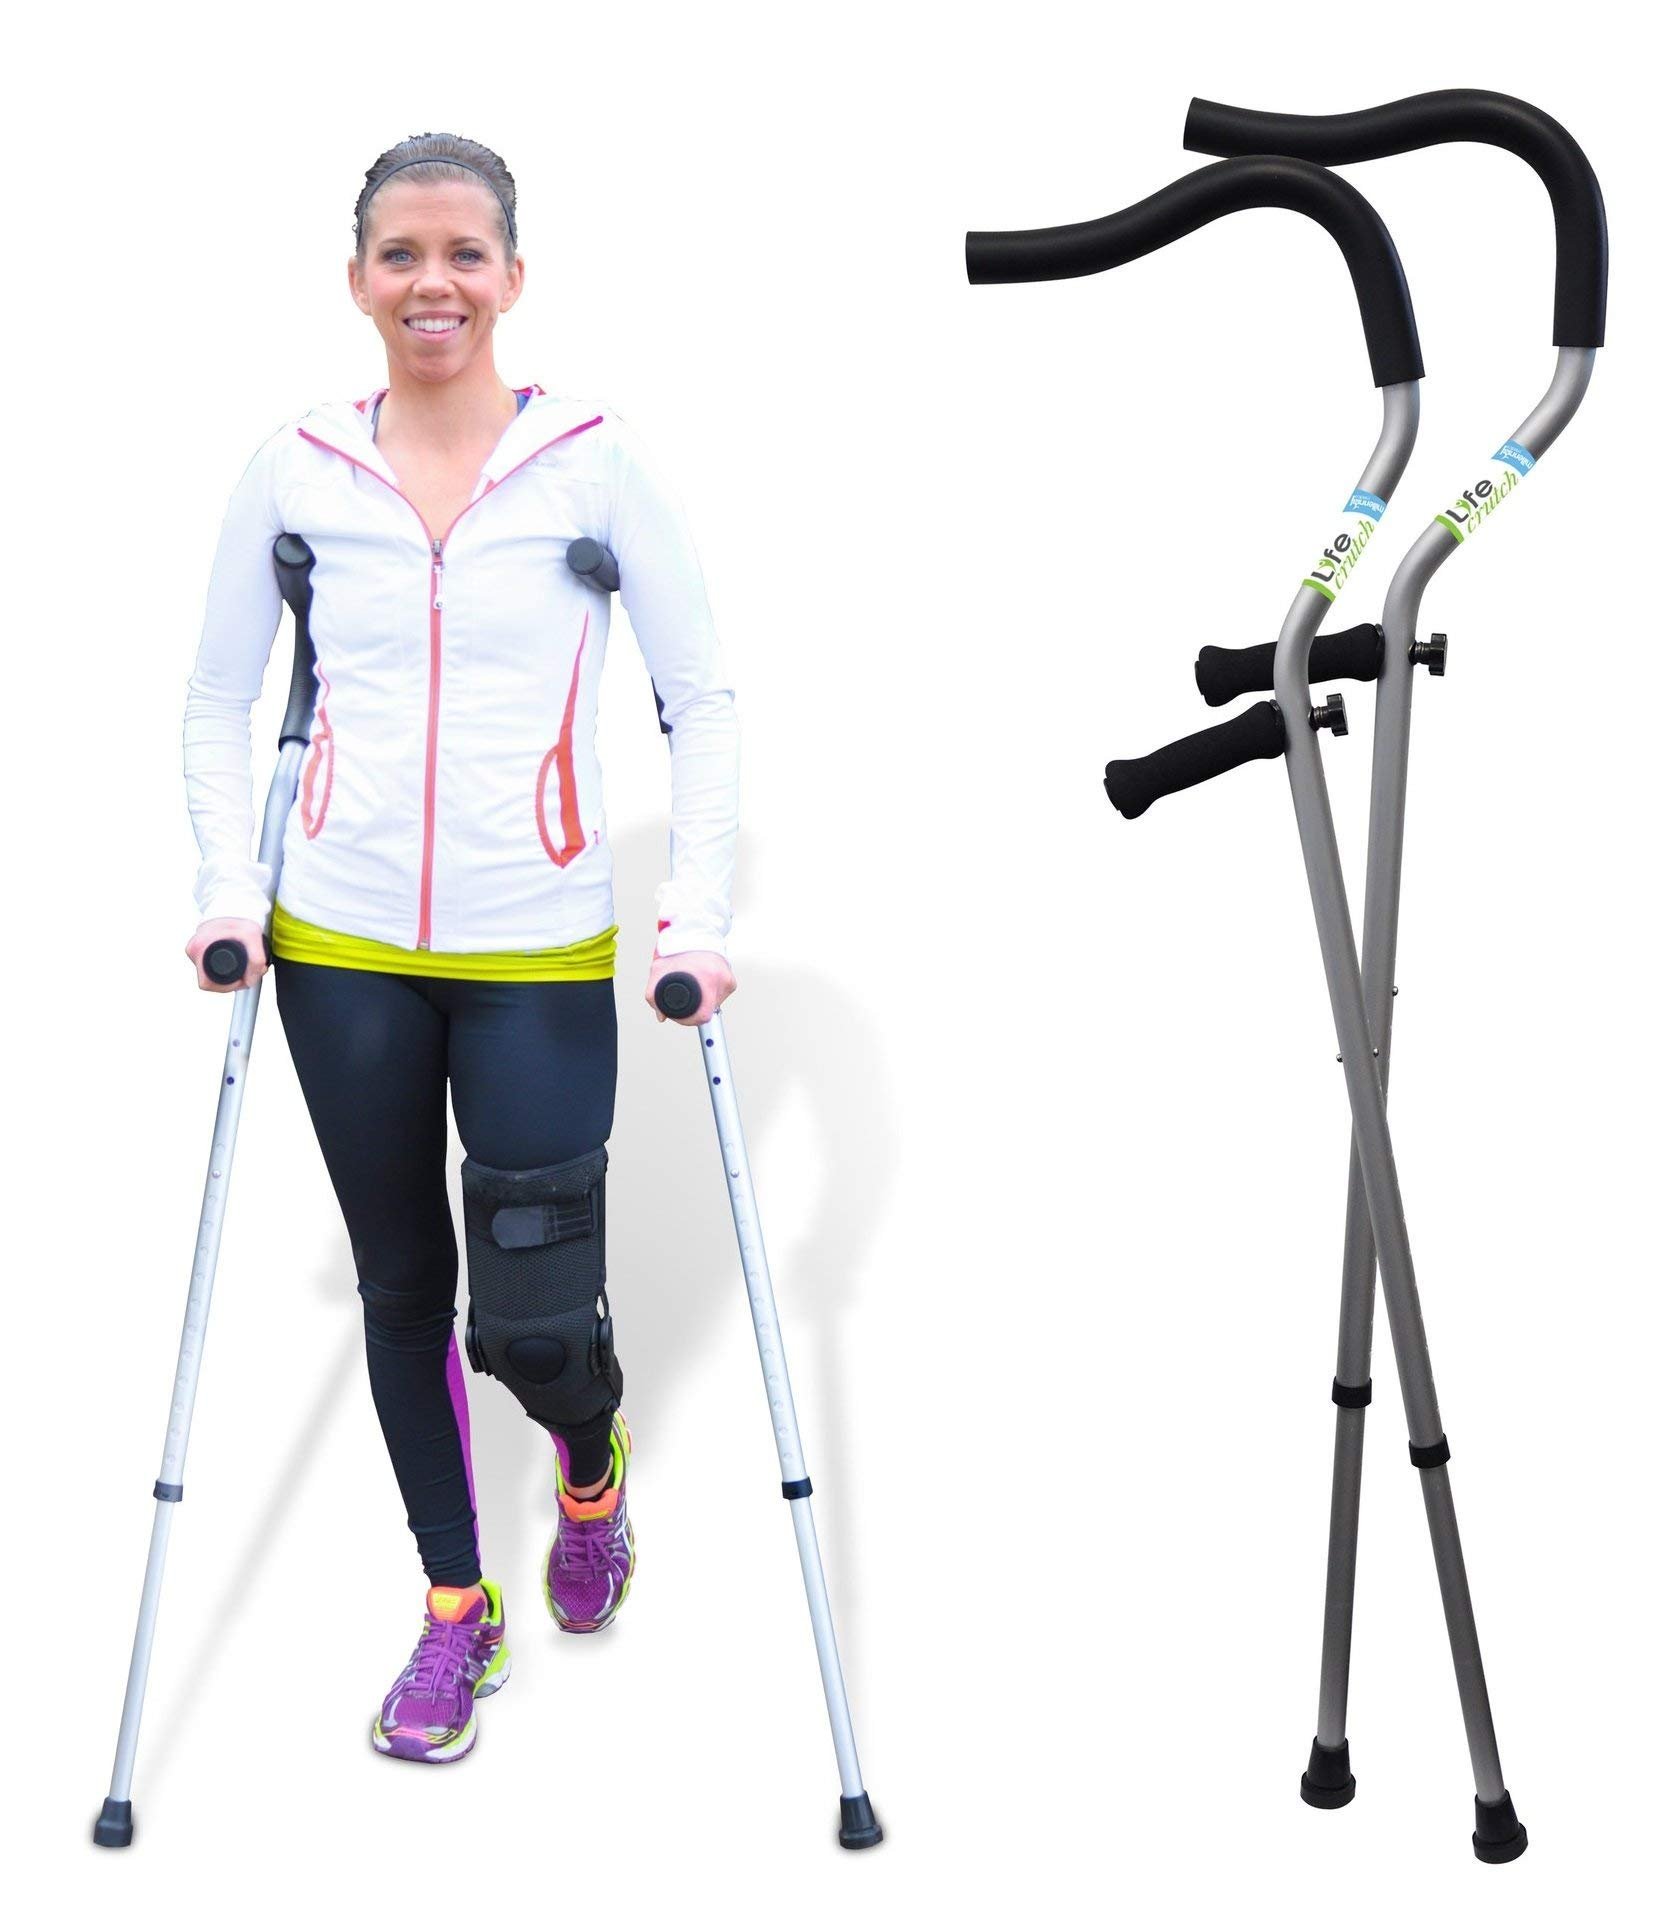 The Life Crutch - 1 Pair of Universal Size Crutches 4'6'' - 6'7'' with Adjustable Ergonomic Handles for Adults and Children by Millennial Medical